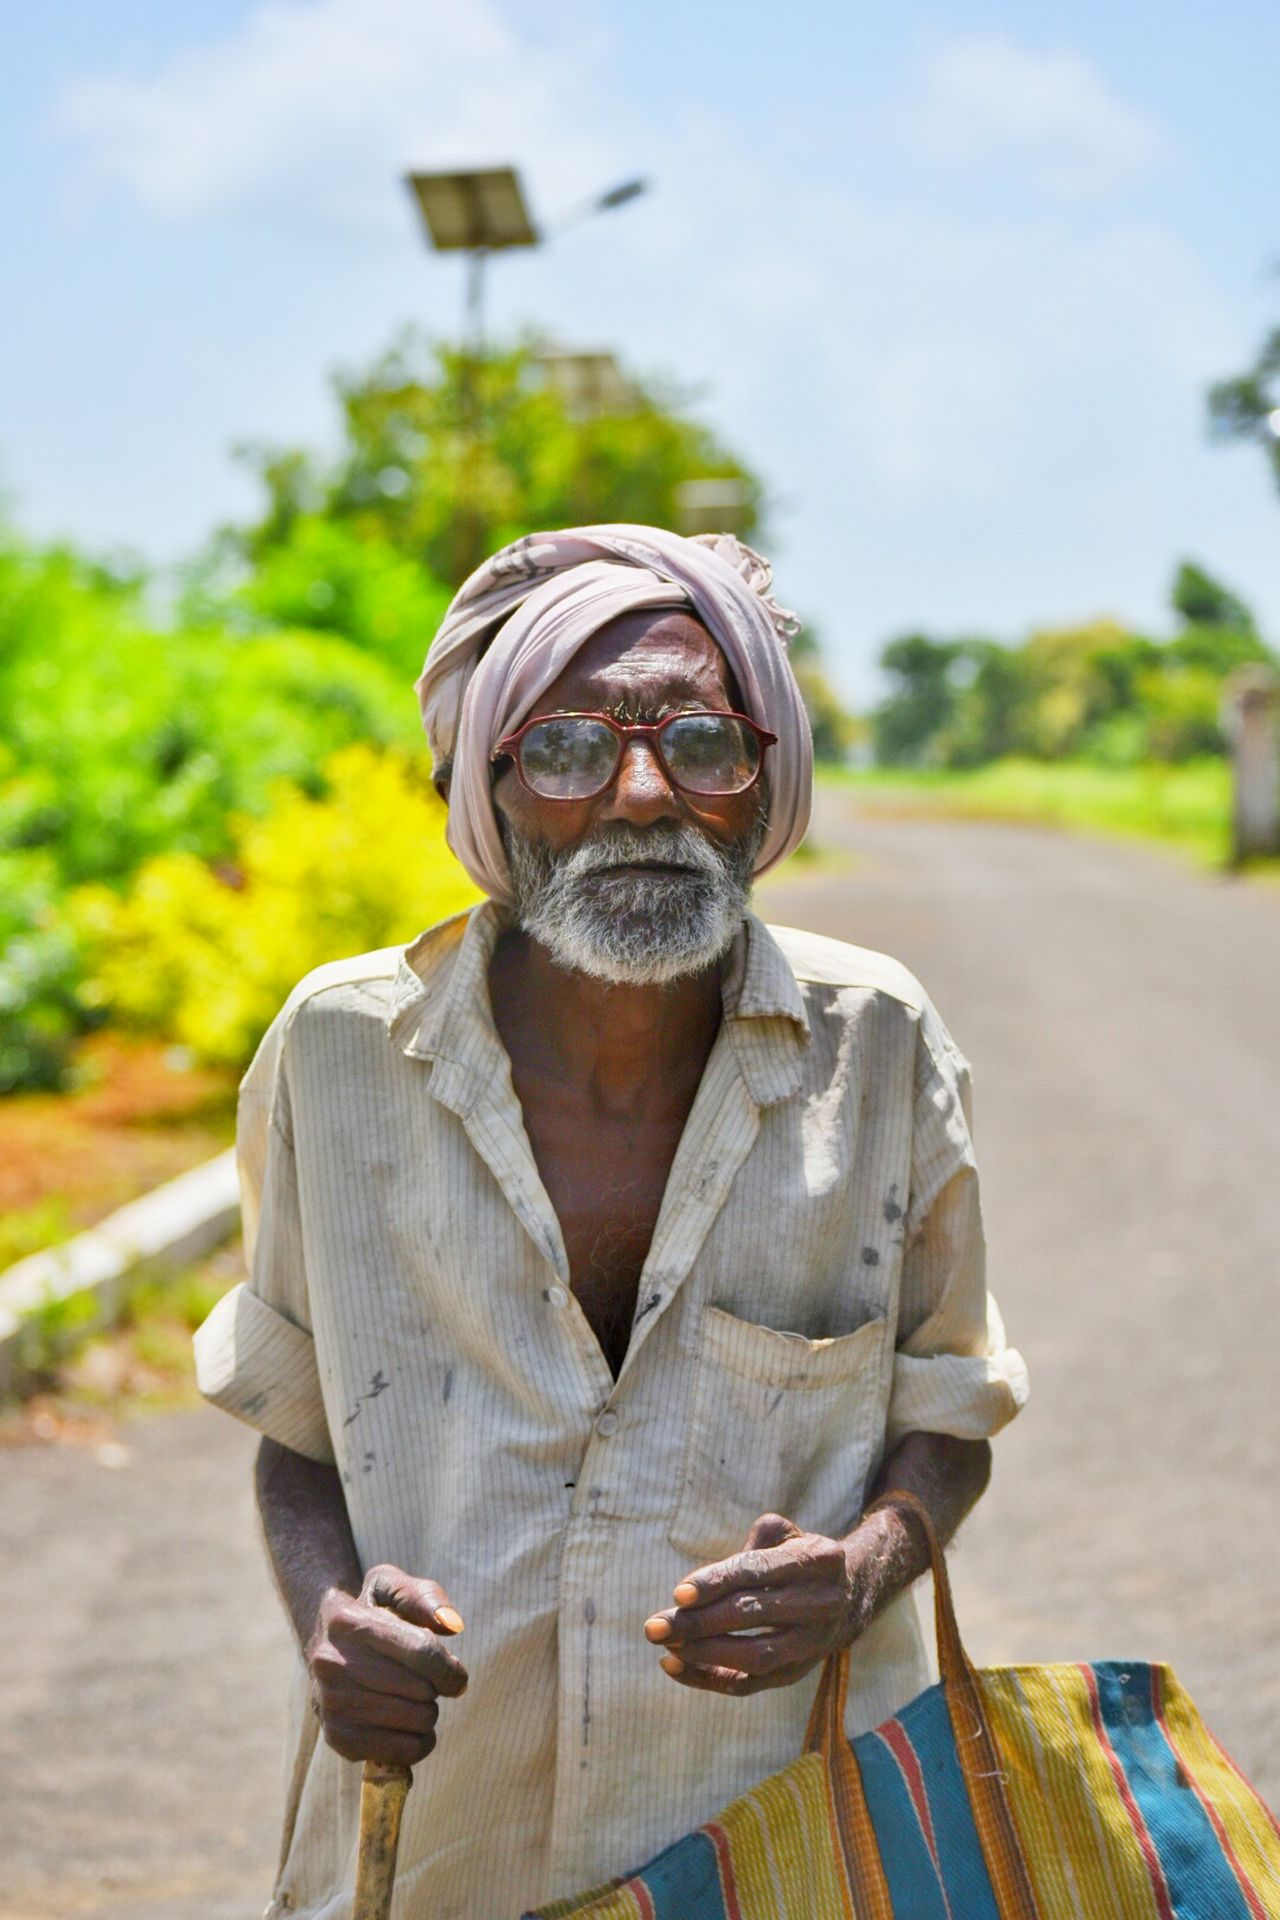 Found this old man begging at a tourist spot. It is so saddening to watch such old people wearing the cloths of poverty Looking At Camera Poverty Poverty. Looking For The Hope Of Light. Poor  Poorpeople Tourism Country Road Old Man Elderly Portrait Photography Portrait Expression Ajantacaves Ajanta Mumbai India Indian Focus On Foreground Front View Casual Clothing Looking At Camera Country Road Outdoors Day Tourism